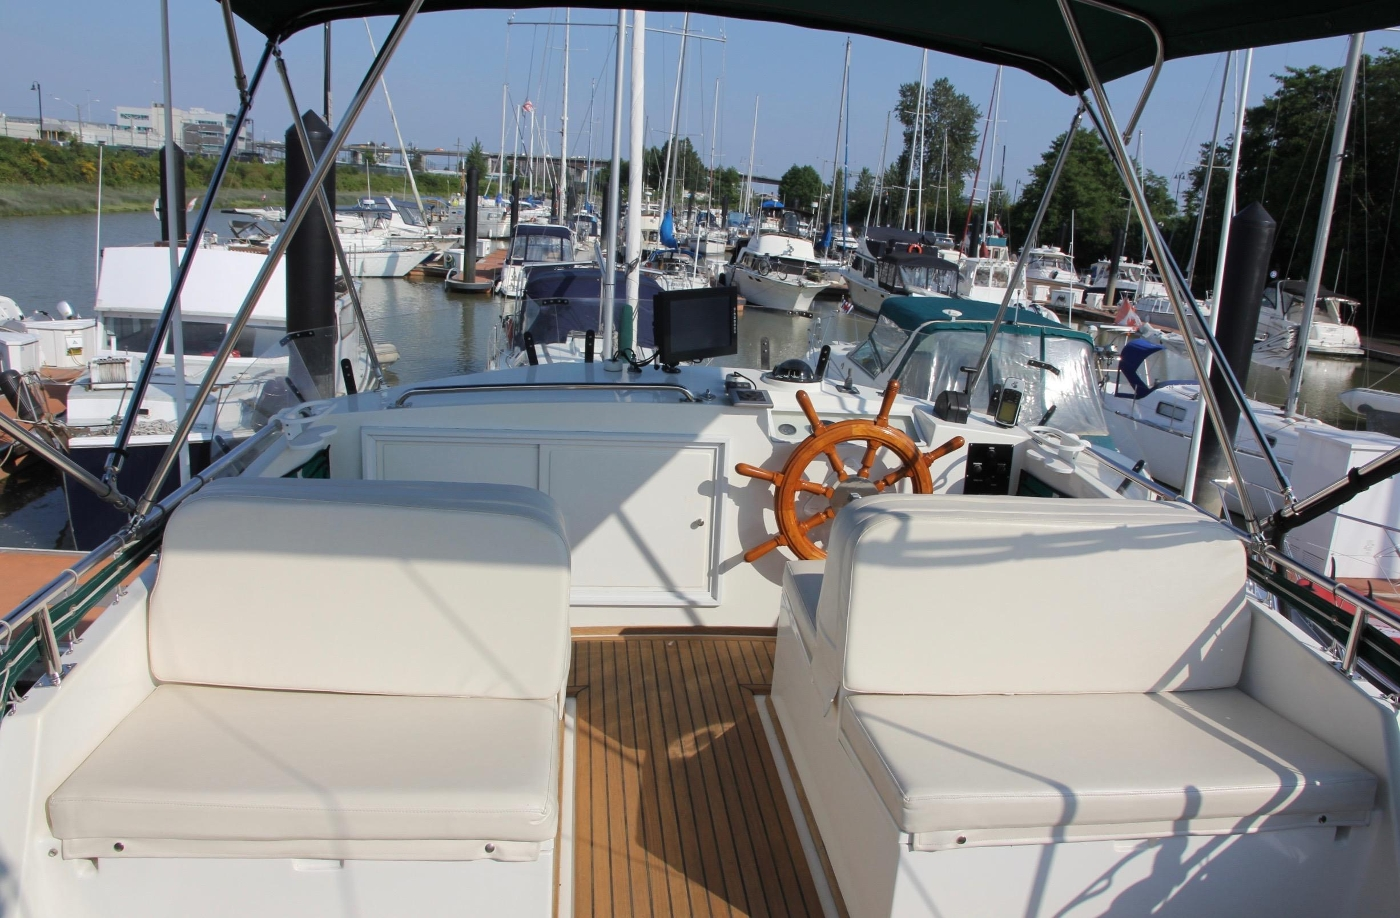 1995 Grand Banks 36 Classic, Flybridge Fore and Aft Seating